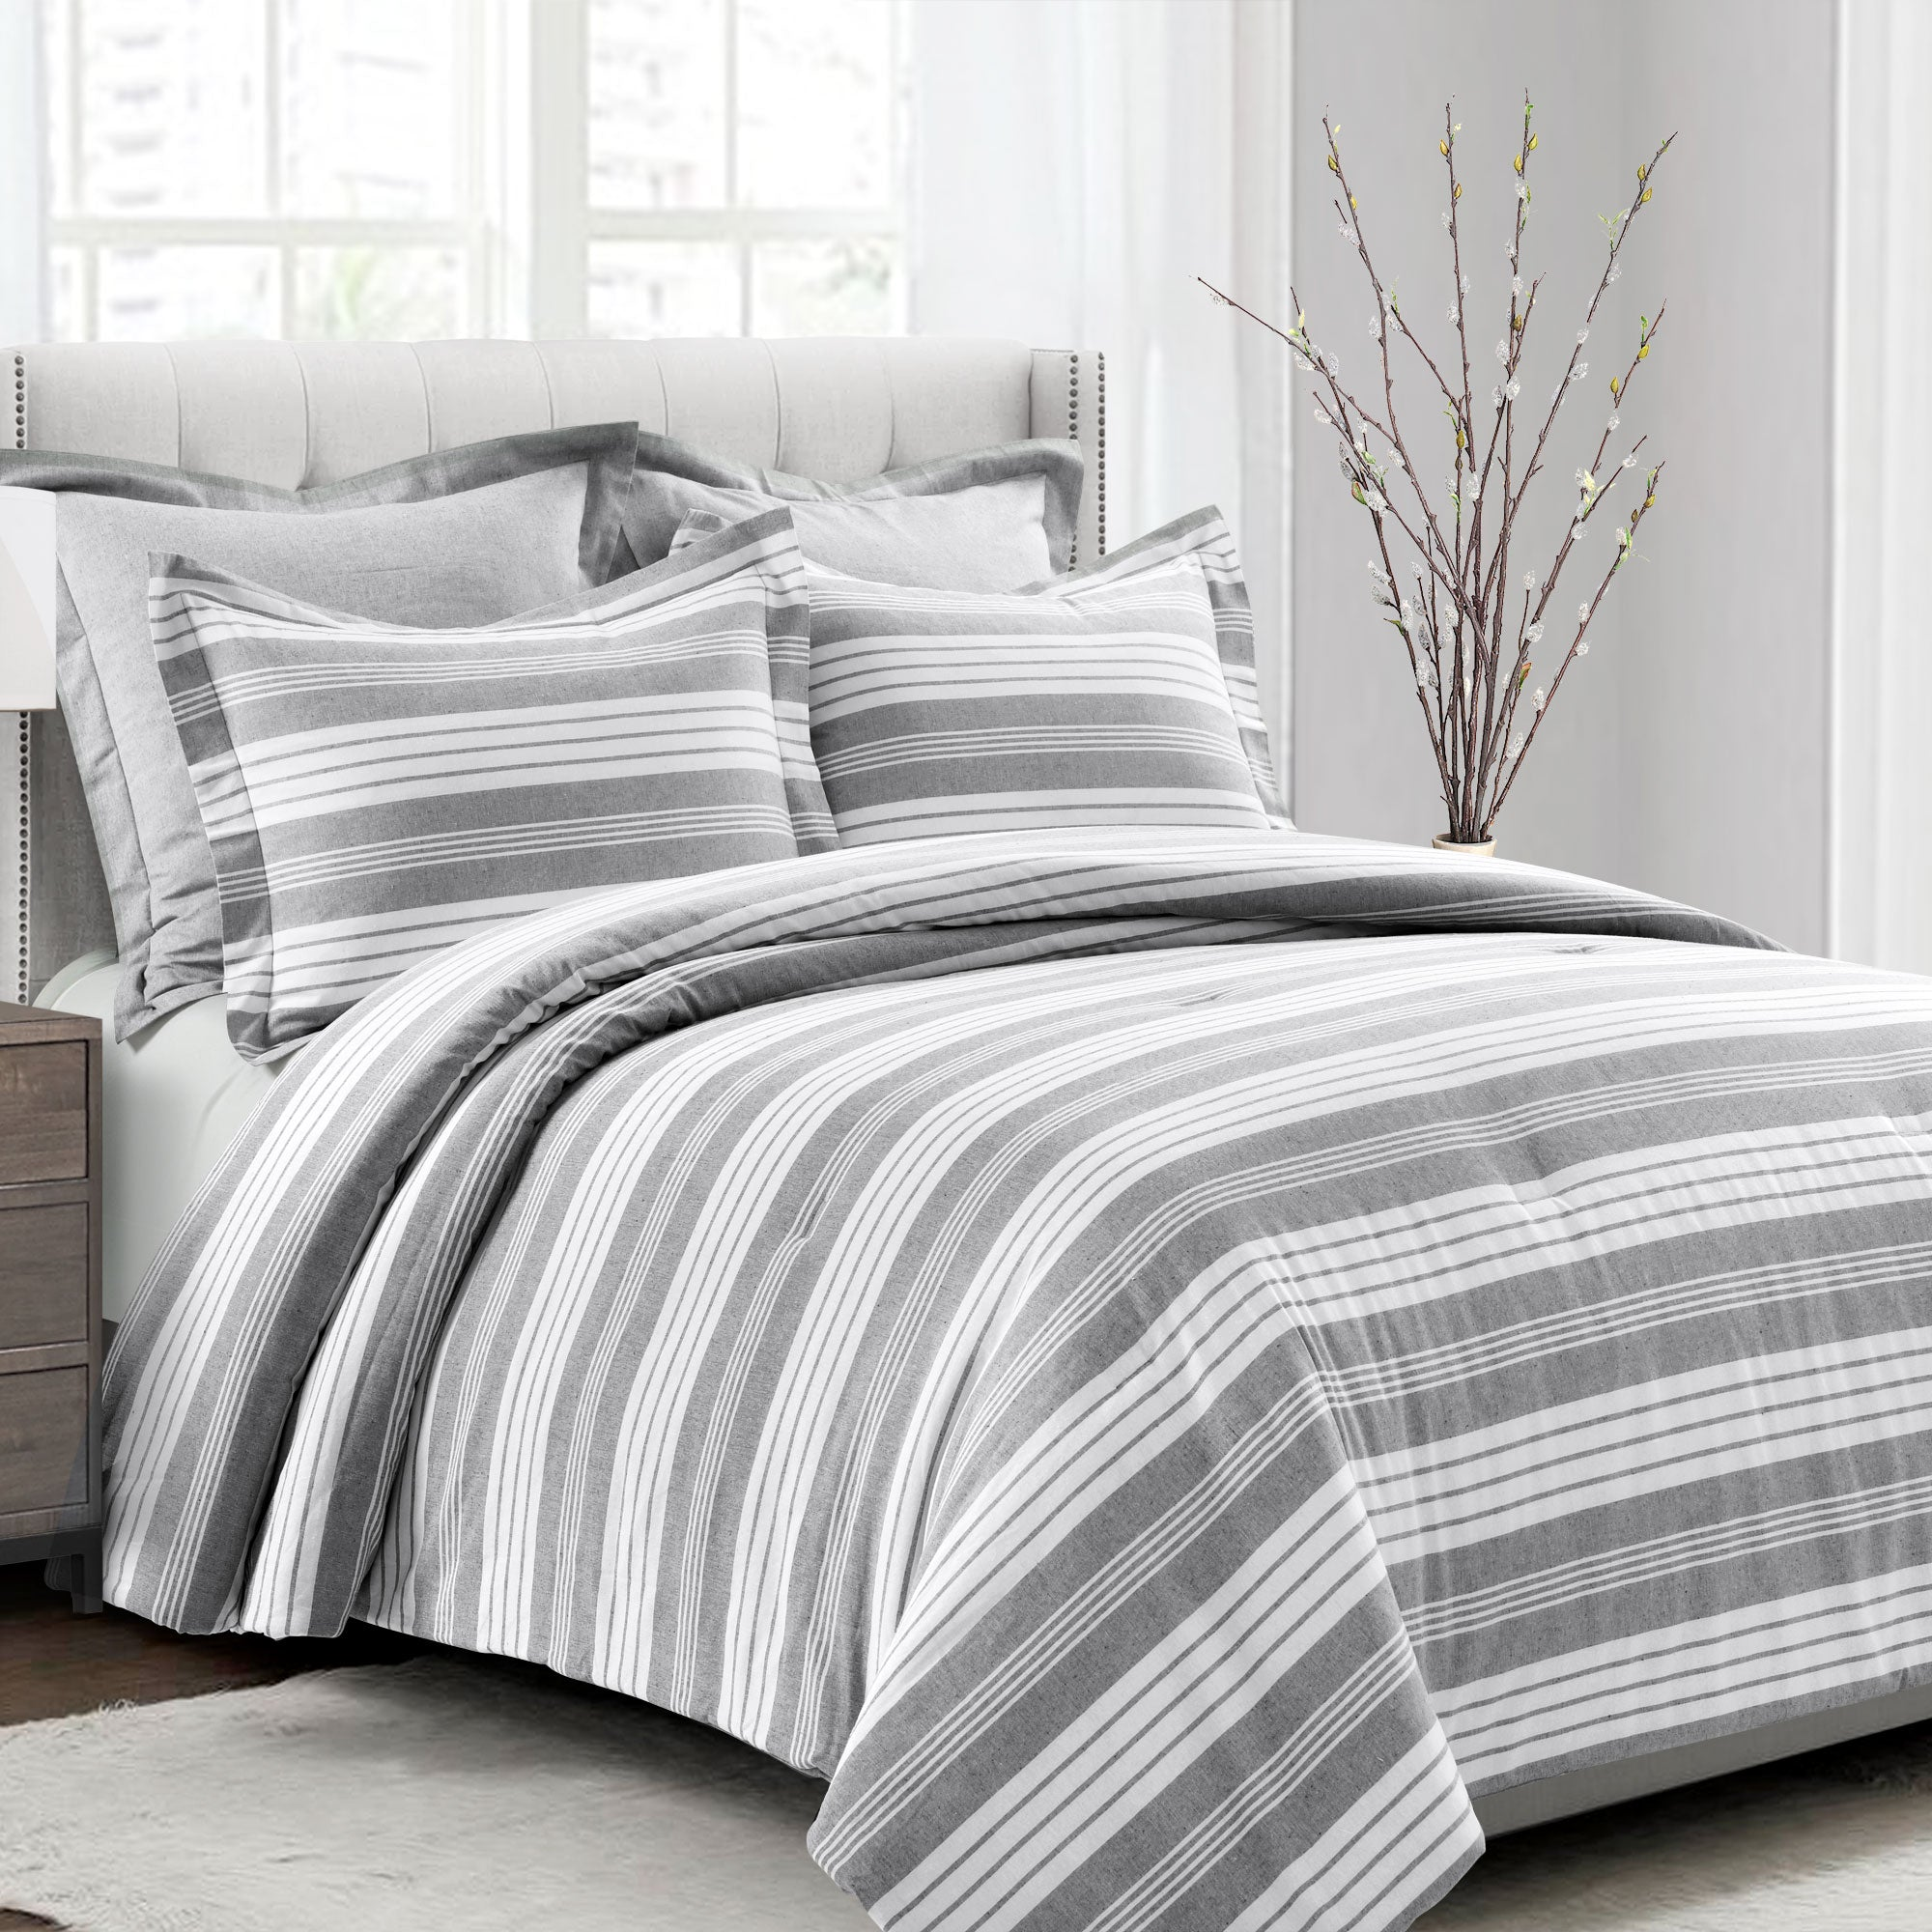 Farmhouse Stripe 3 Piece Comforter Set Lush Decor Www Lushdecor Com